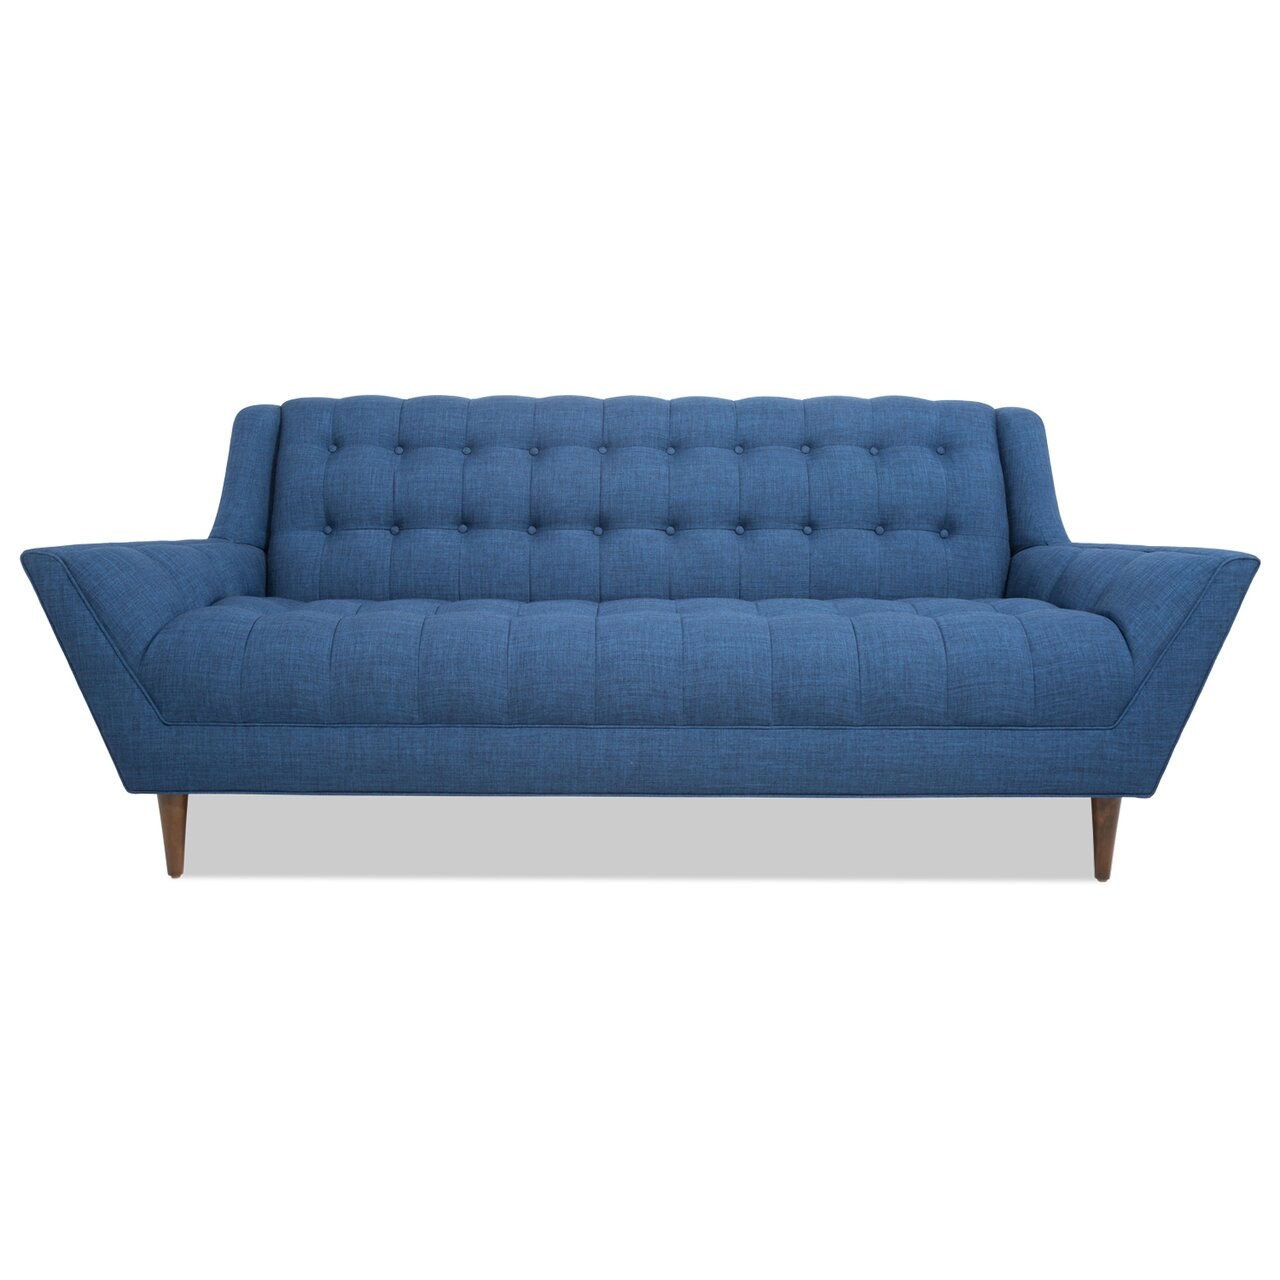 Discount modern sofas designer sectional sofas discount for Cheap modern furniture